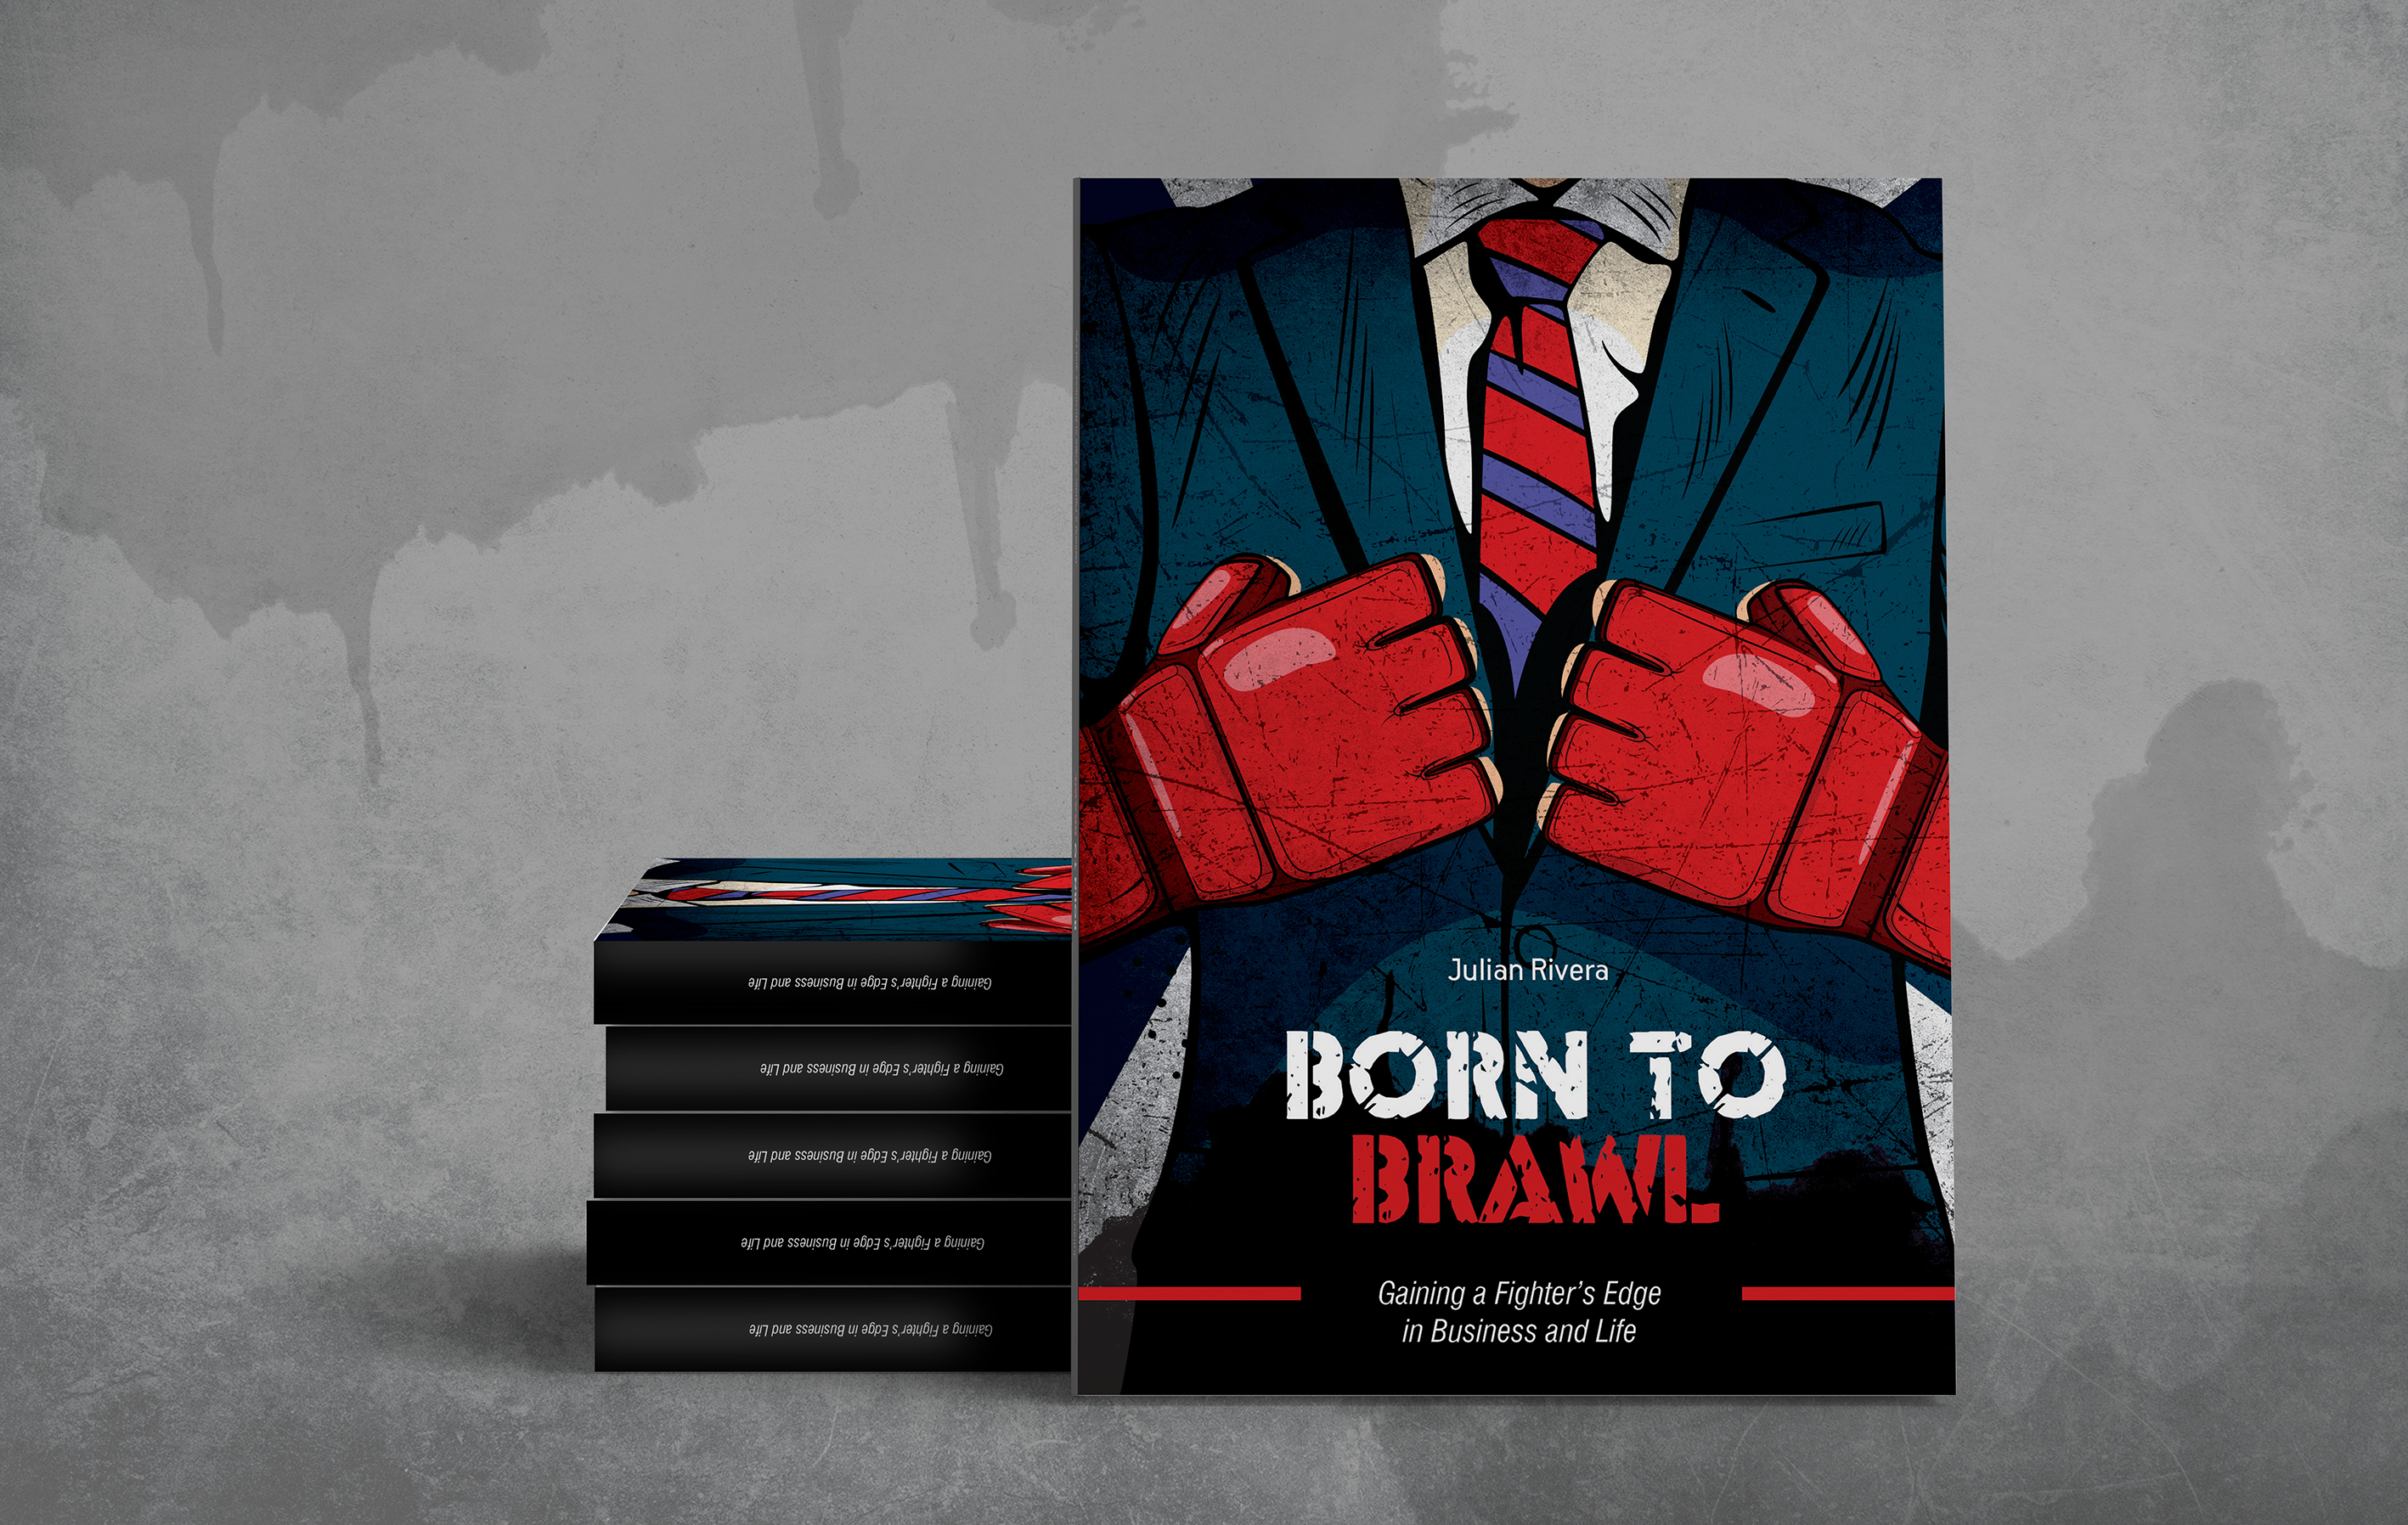 Born to Brawl by Julian Rivera